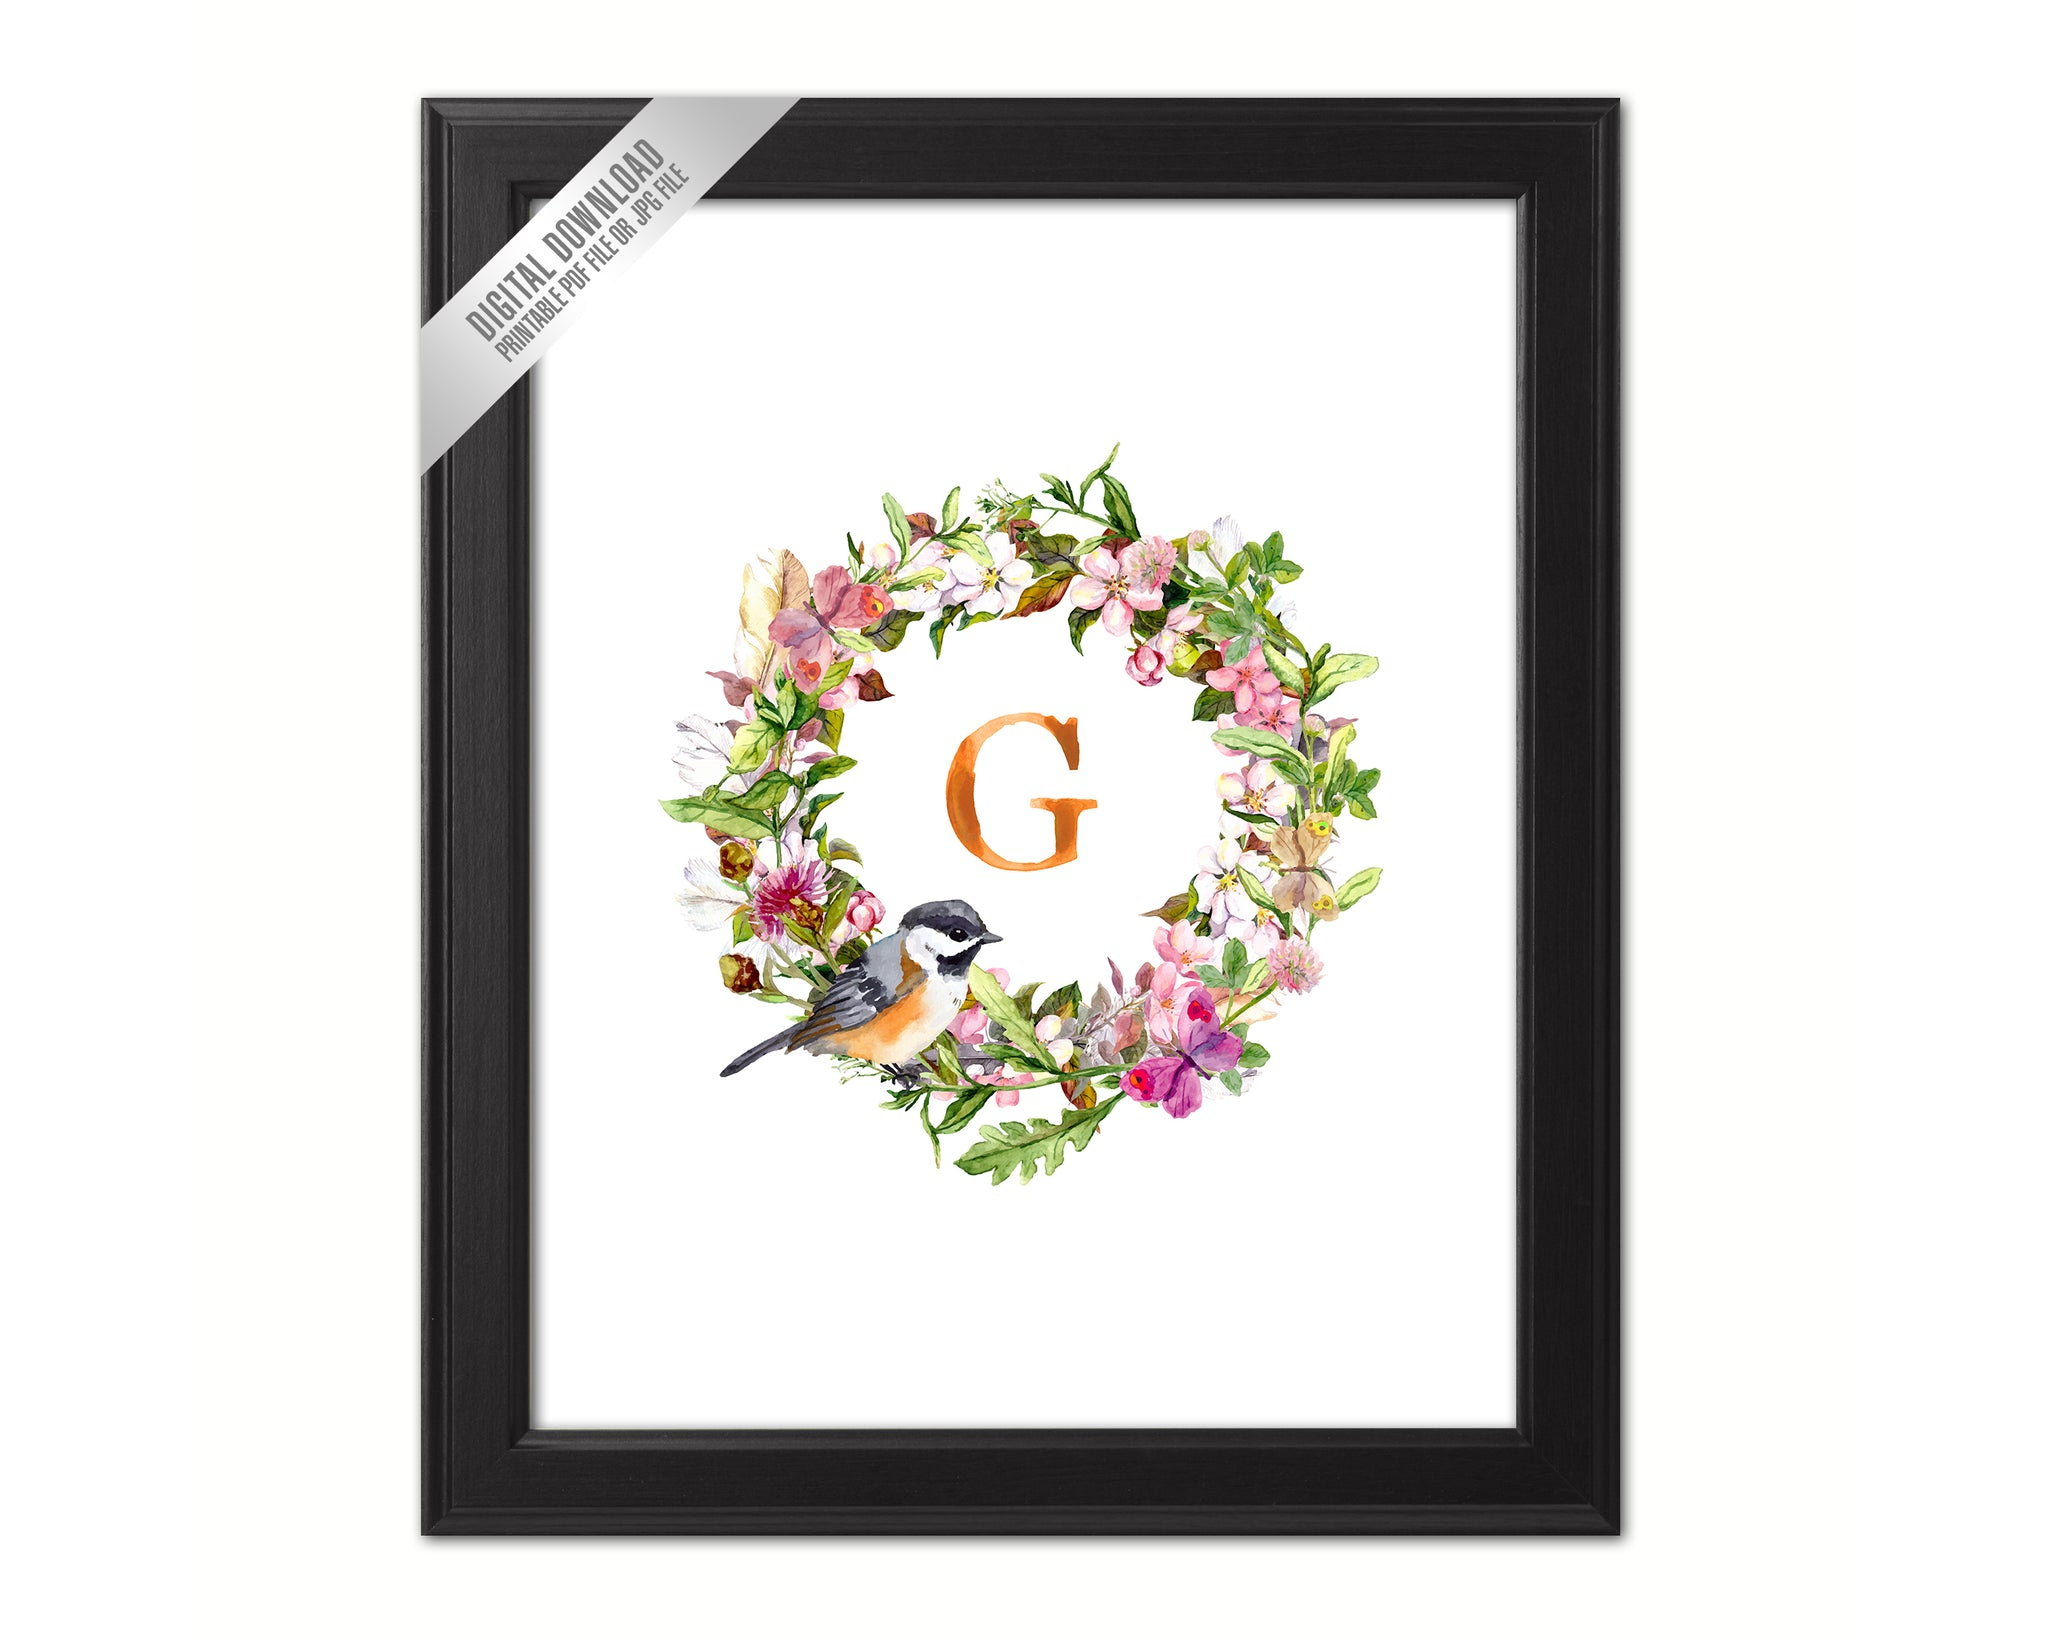 Letter G Monogram Initial Wall Art Custom Letters Printable Home Decor Watercolor Wreath Gift for Her Name Sign Digital Download